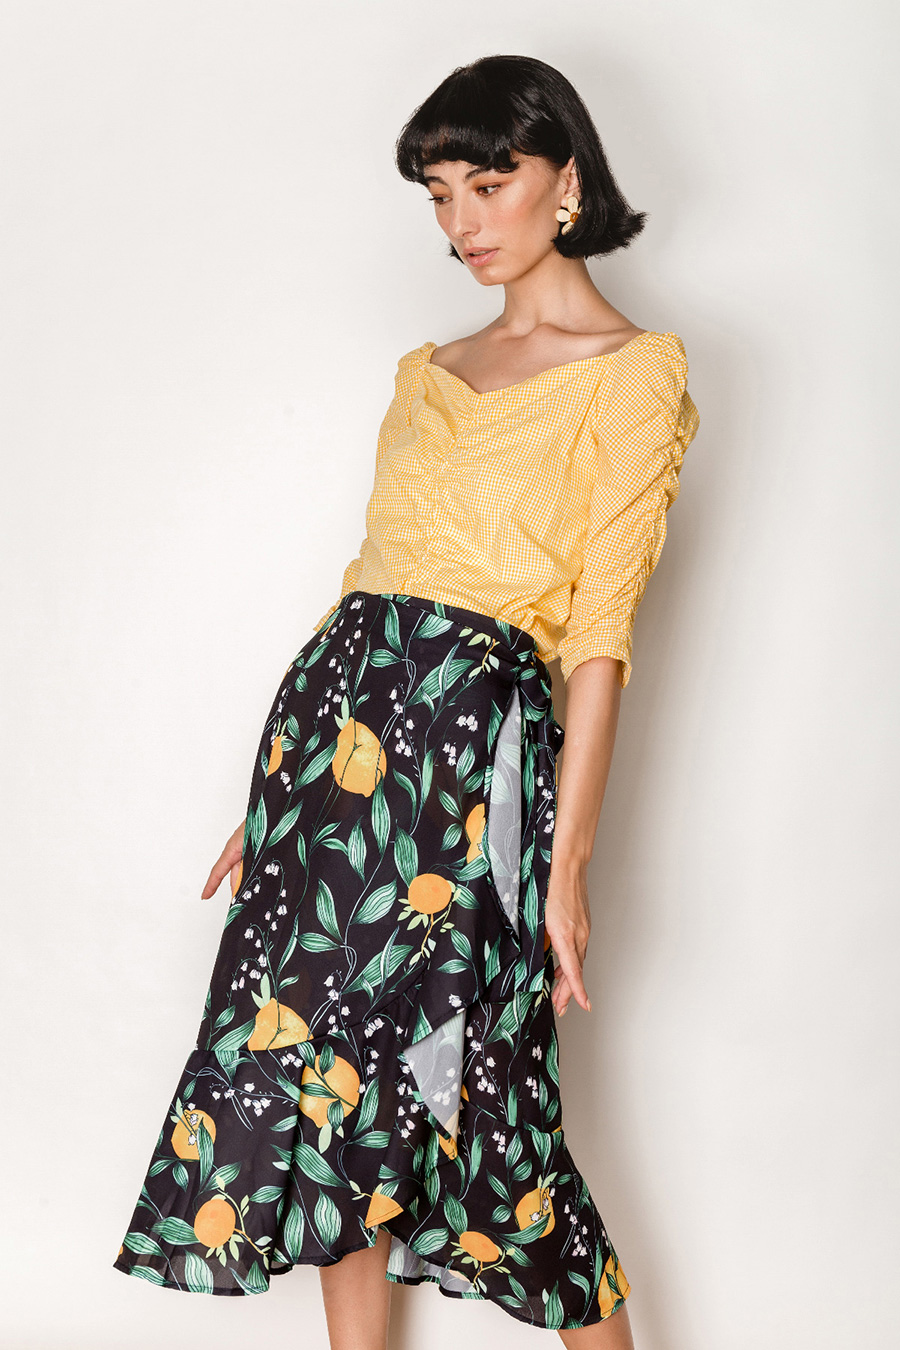 *RESTOCKED* ANTONOFF SKIRT - CITRONS